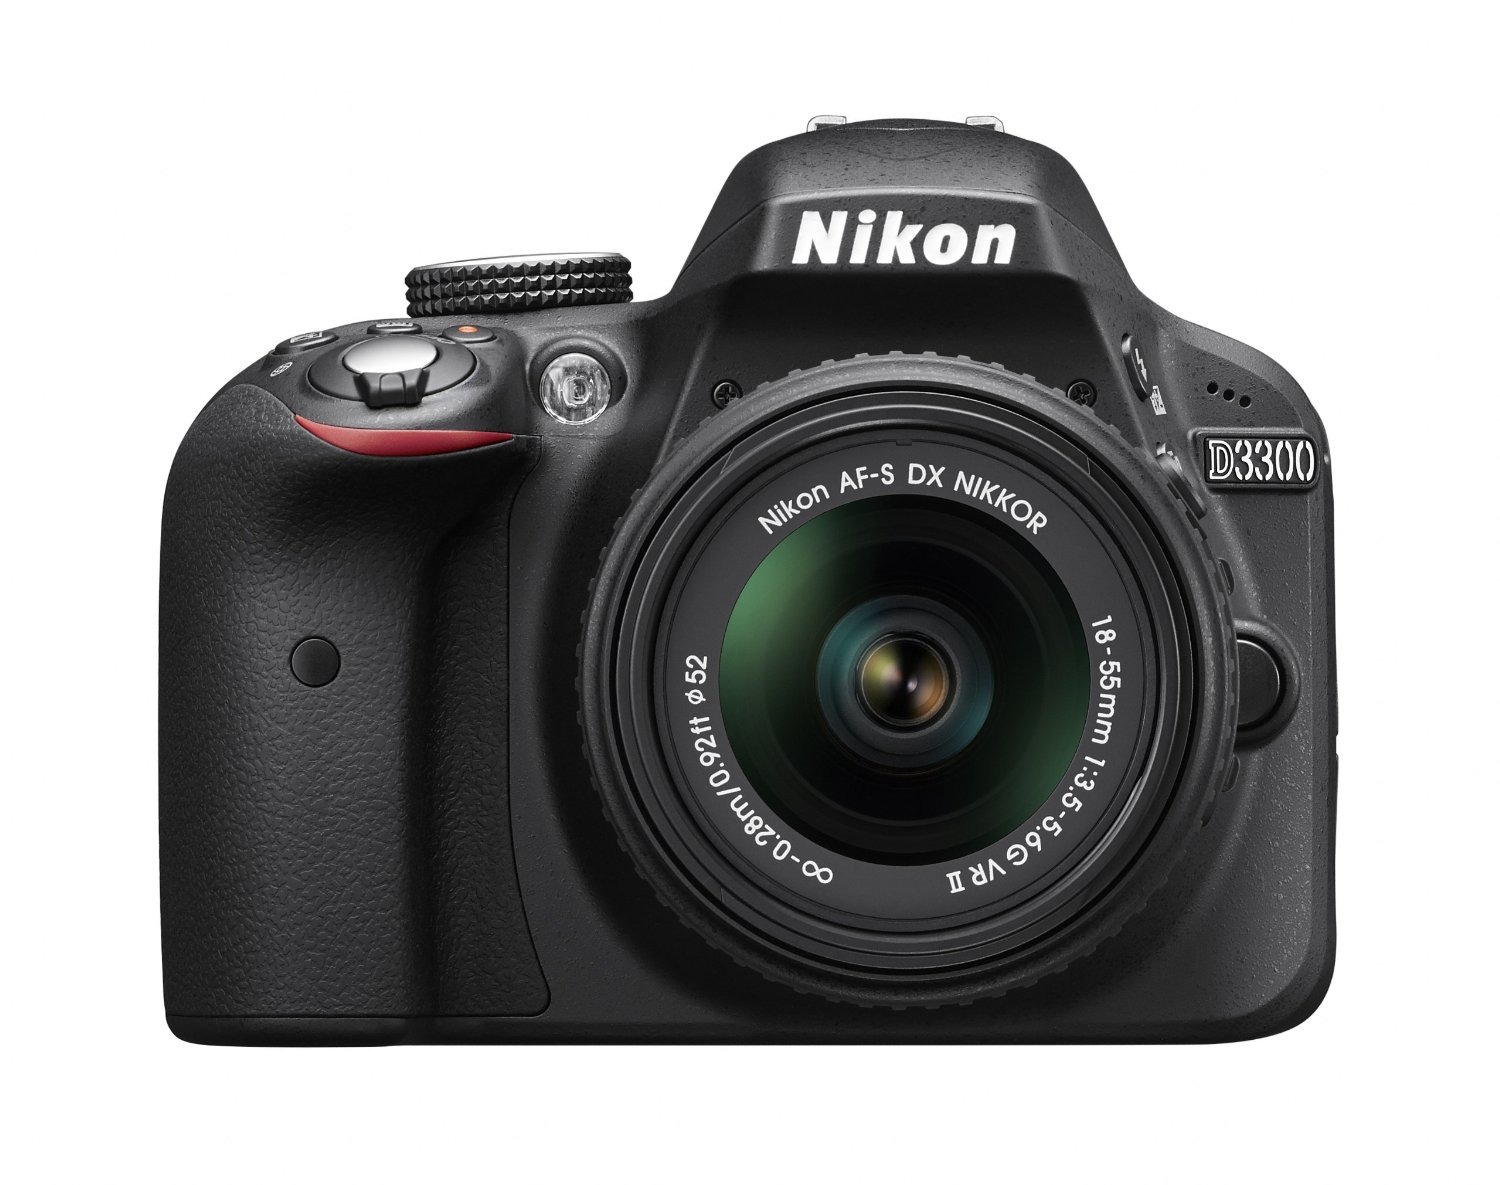 Nikon D3300 with 18-55mm DX VR II lens